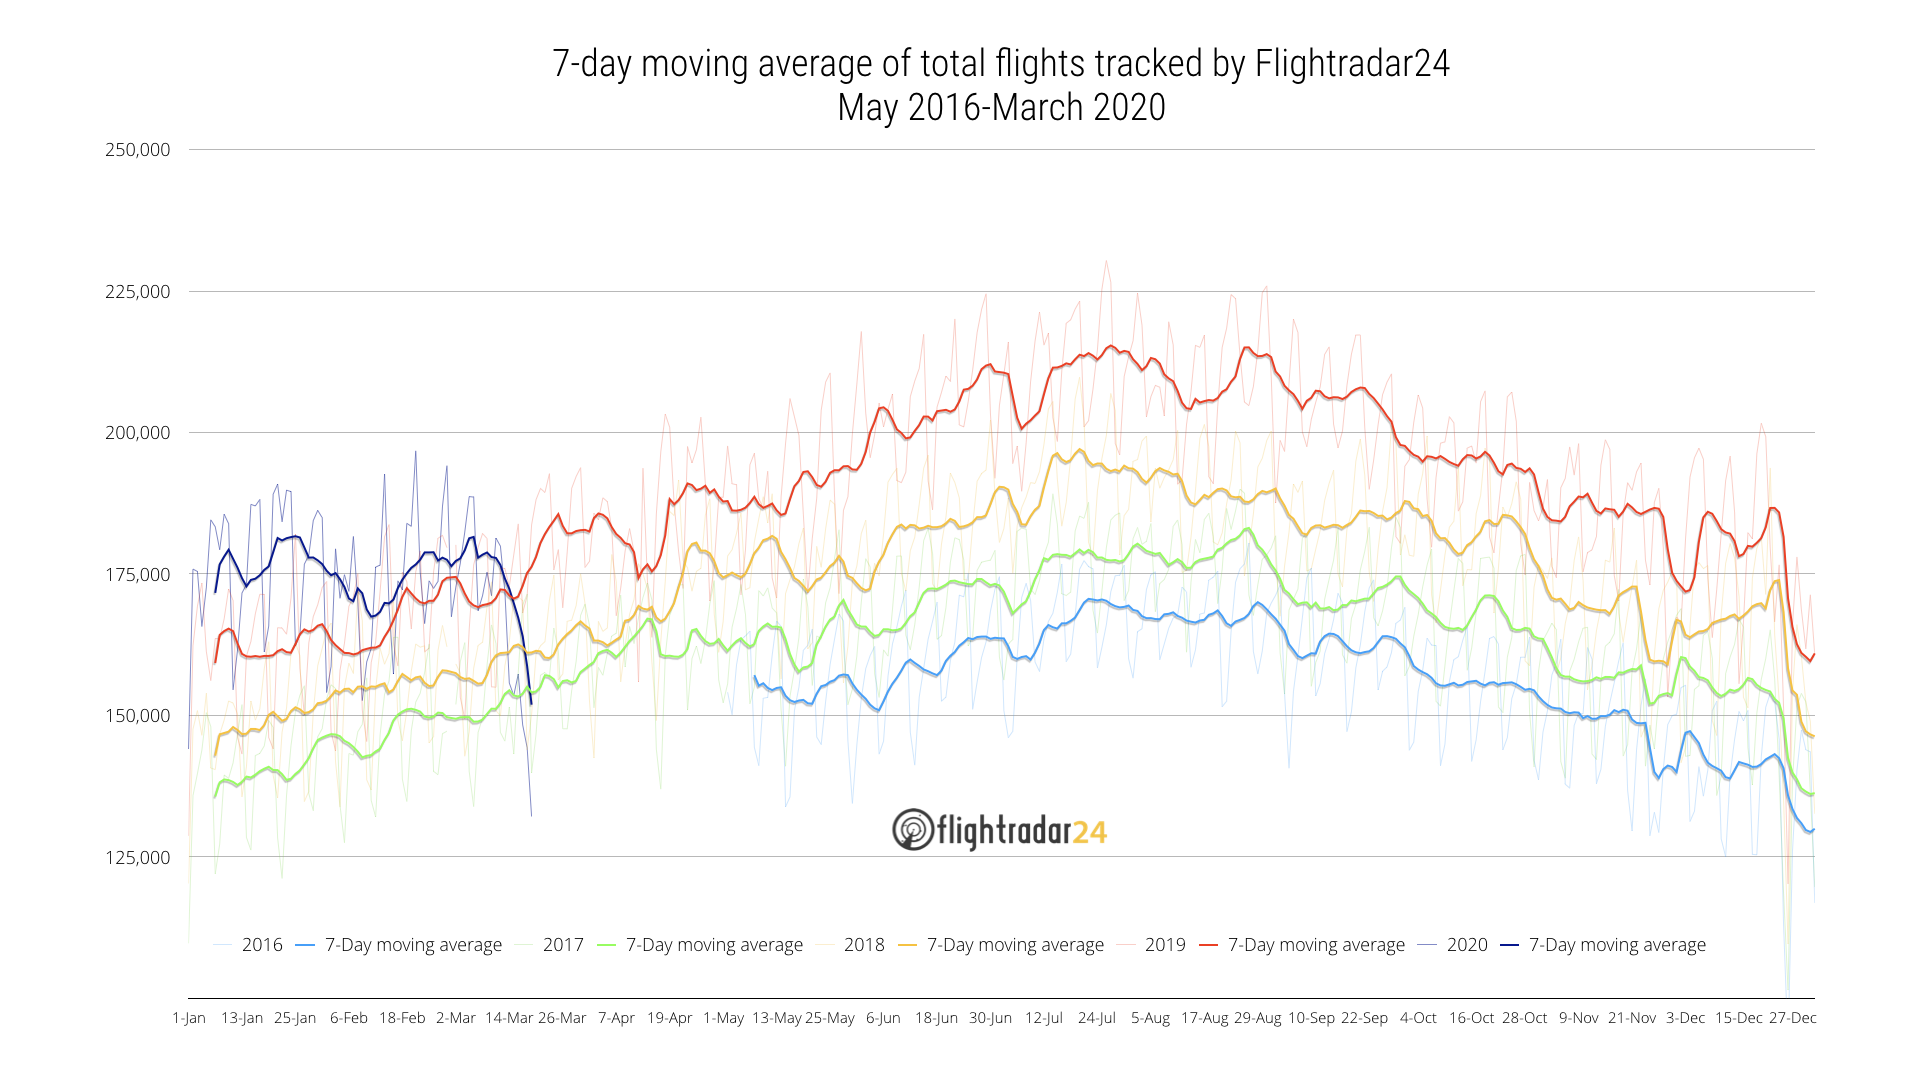 7-day moving average of total flights tracked